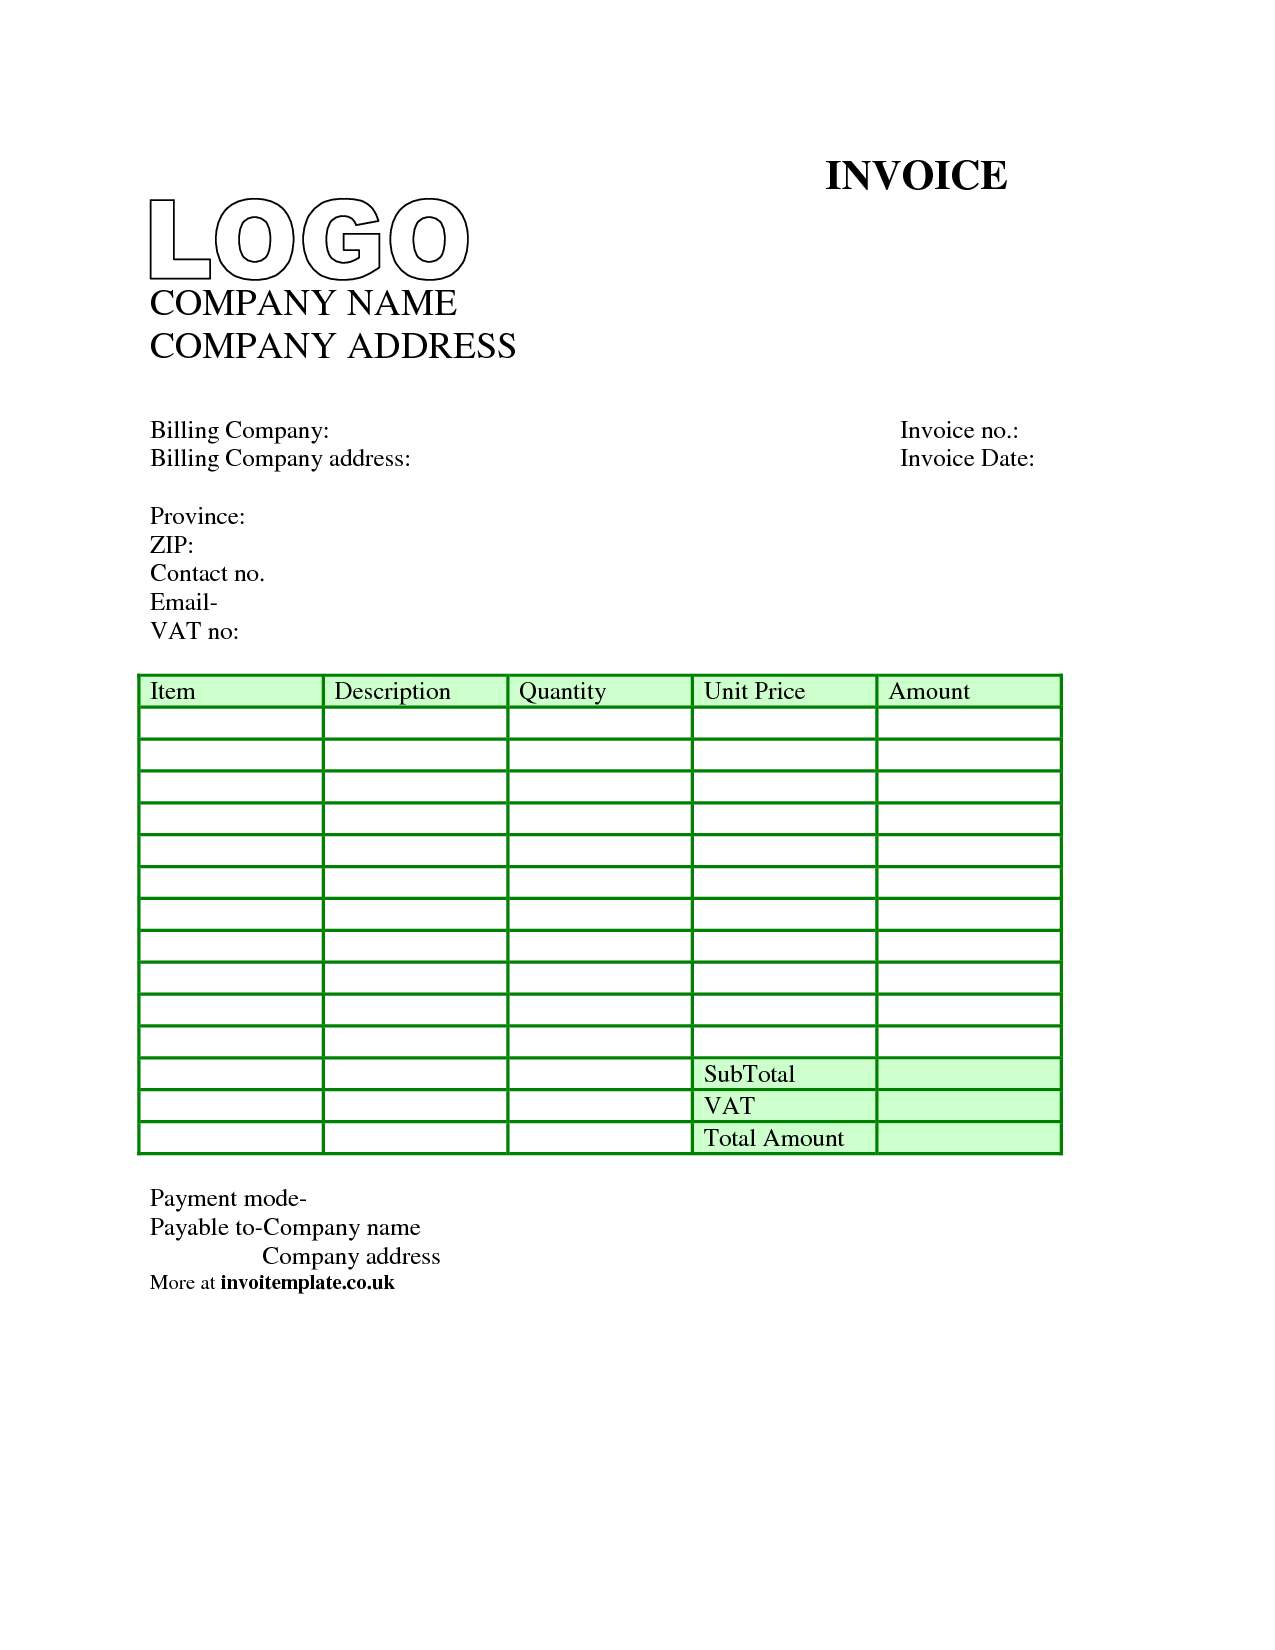 Free Downloadable Invoice Template Word and Uk Vat Invoice Template Word Firmsinjafo